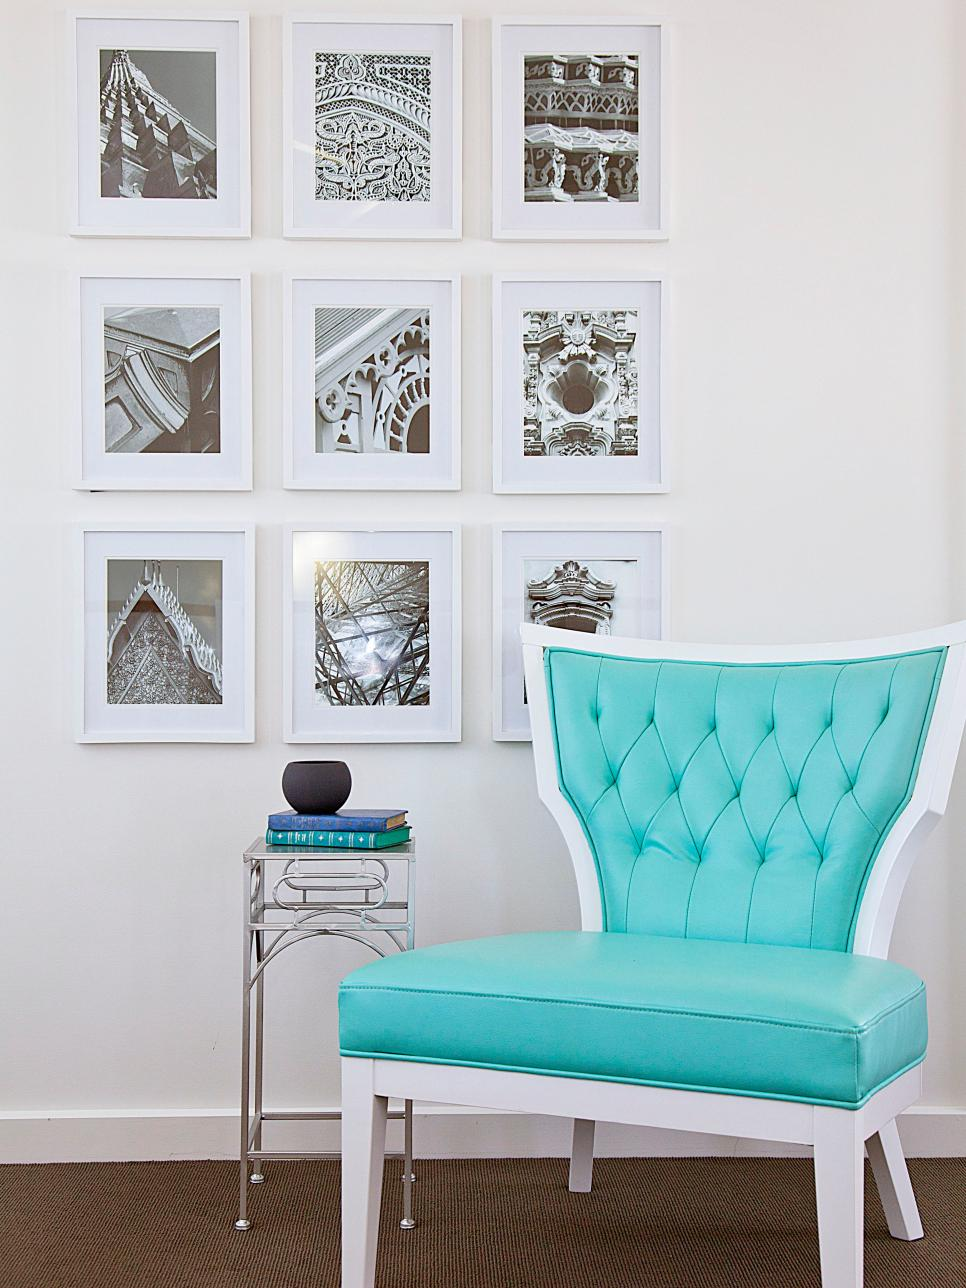 Master Bedroom Sitting Area With a Gallery Wall and Turquoise Chair